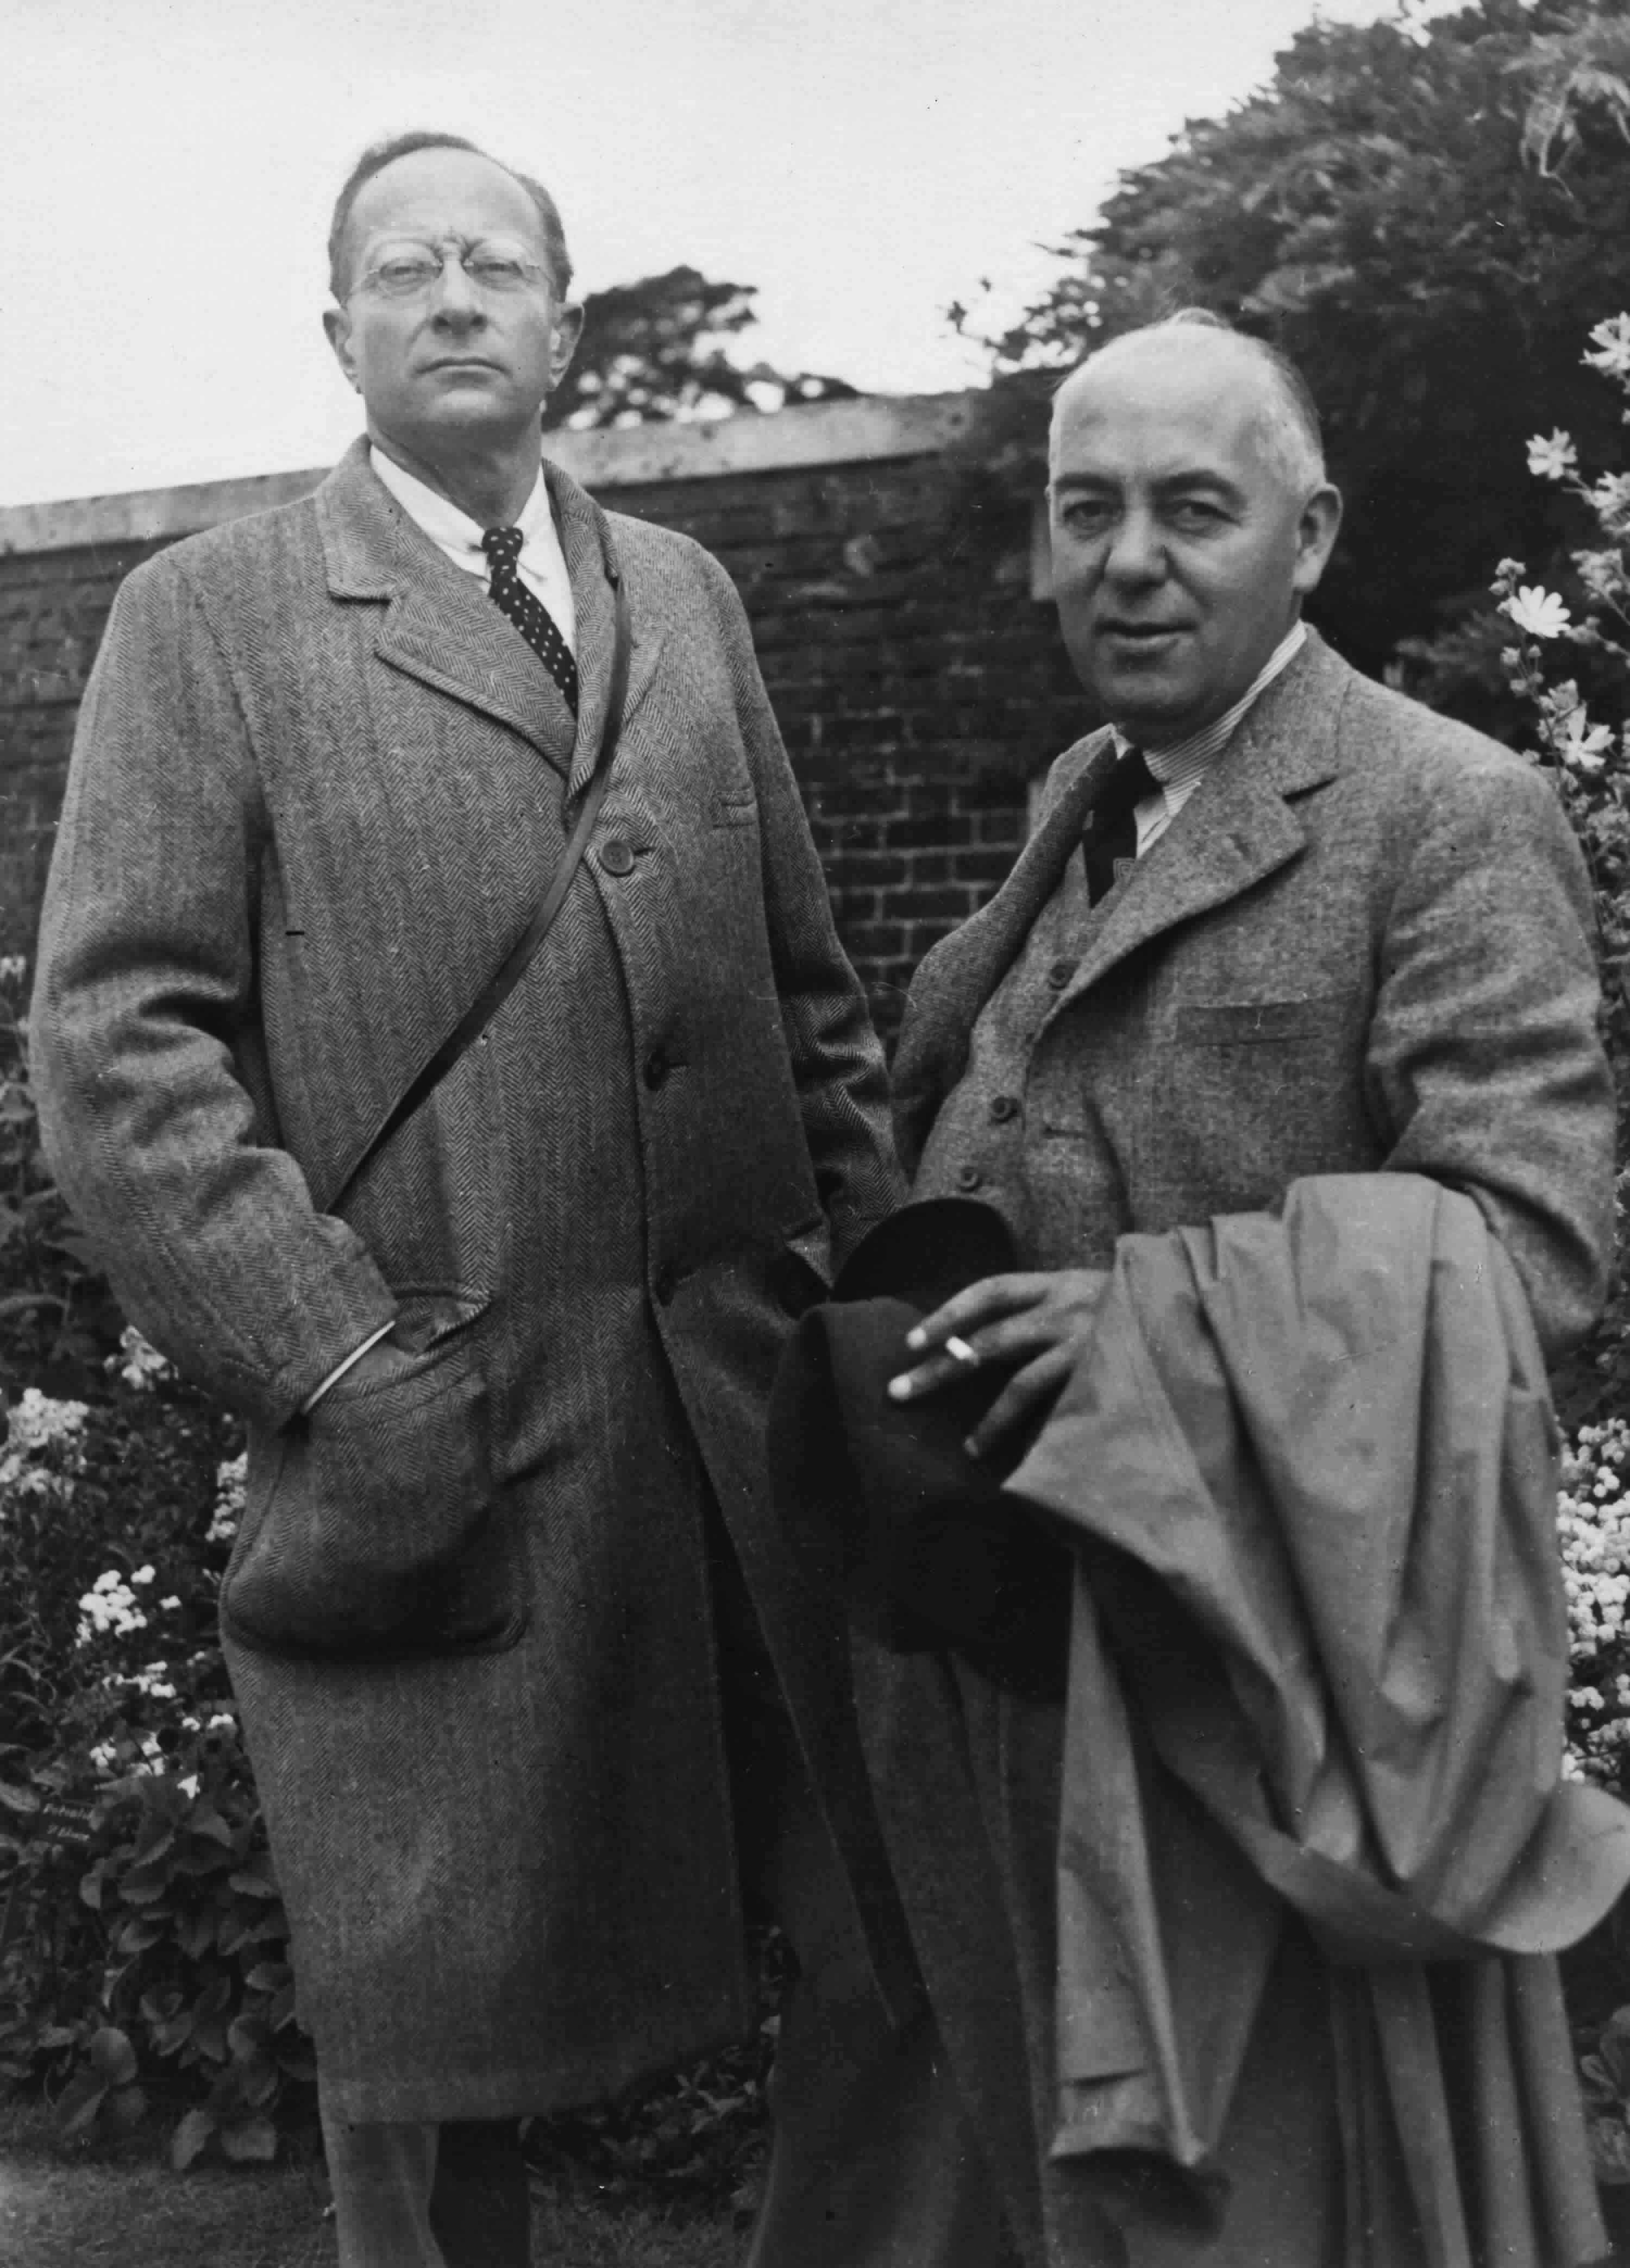 Photograph of Blampied and Harold Baily in 1937